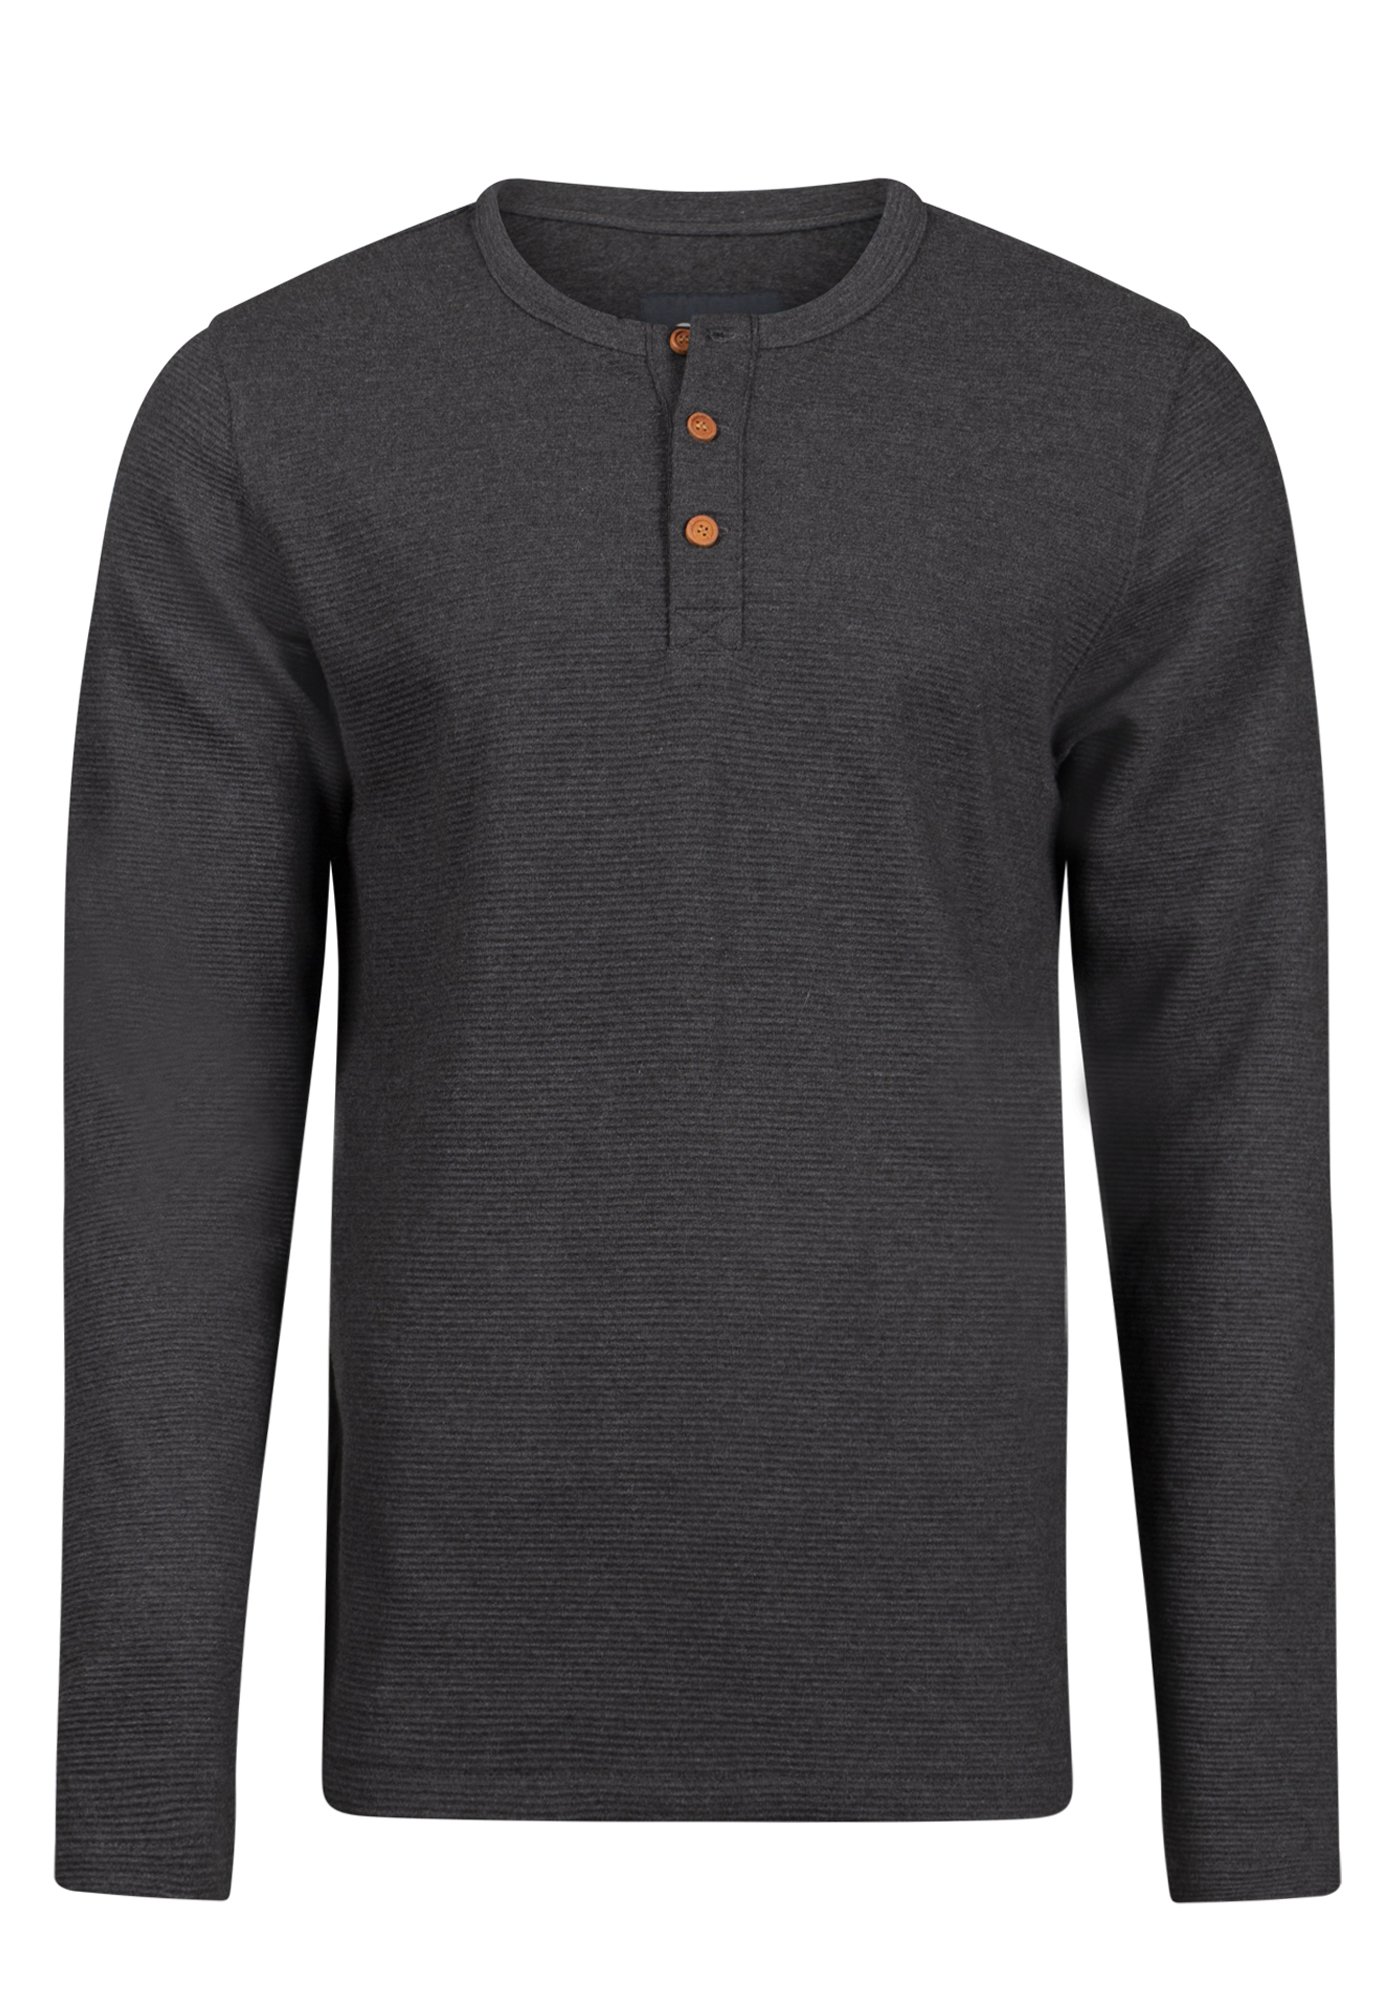 Men's Henley Rib Knit Sweater, BLACK, hi-res